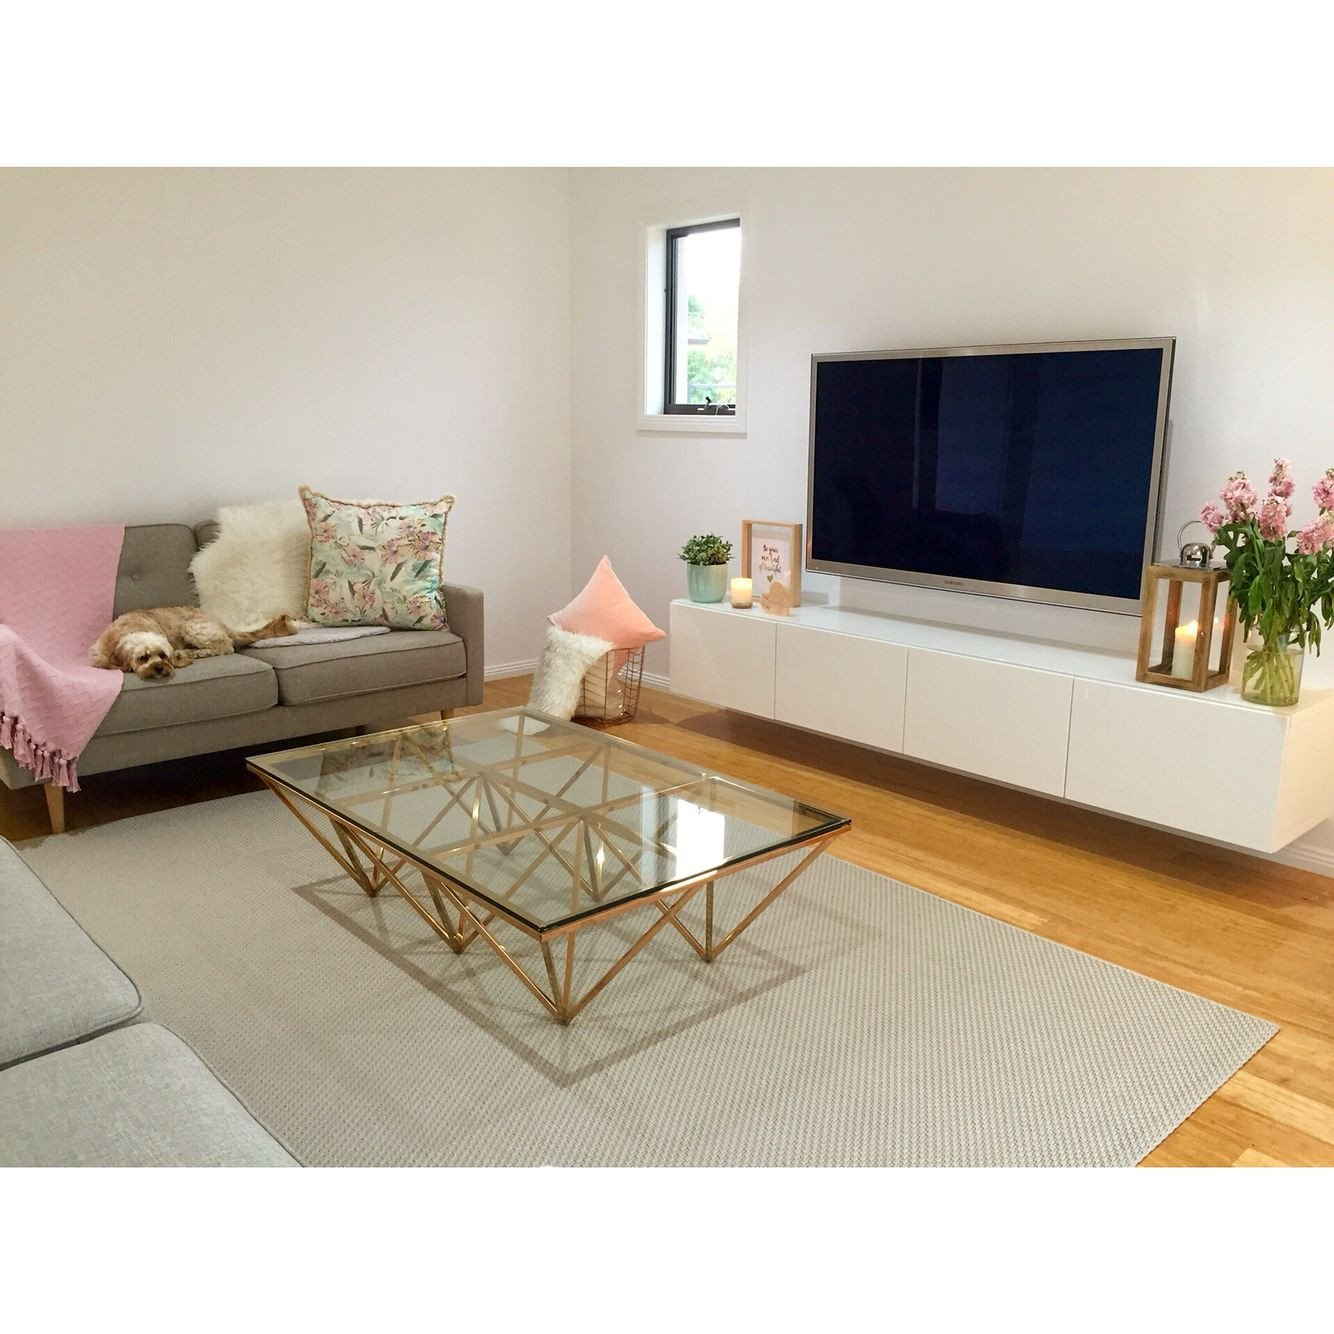 Living Room Ideas Tv Stand Contemporary Scandinavian Decor Copper Coffee Table